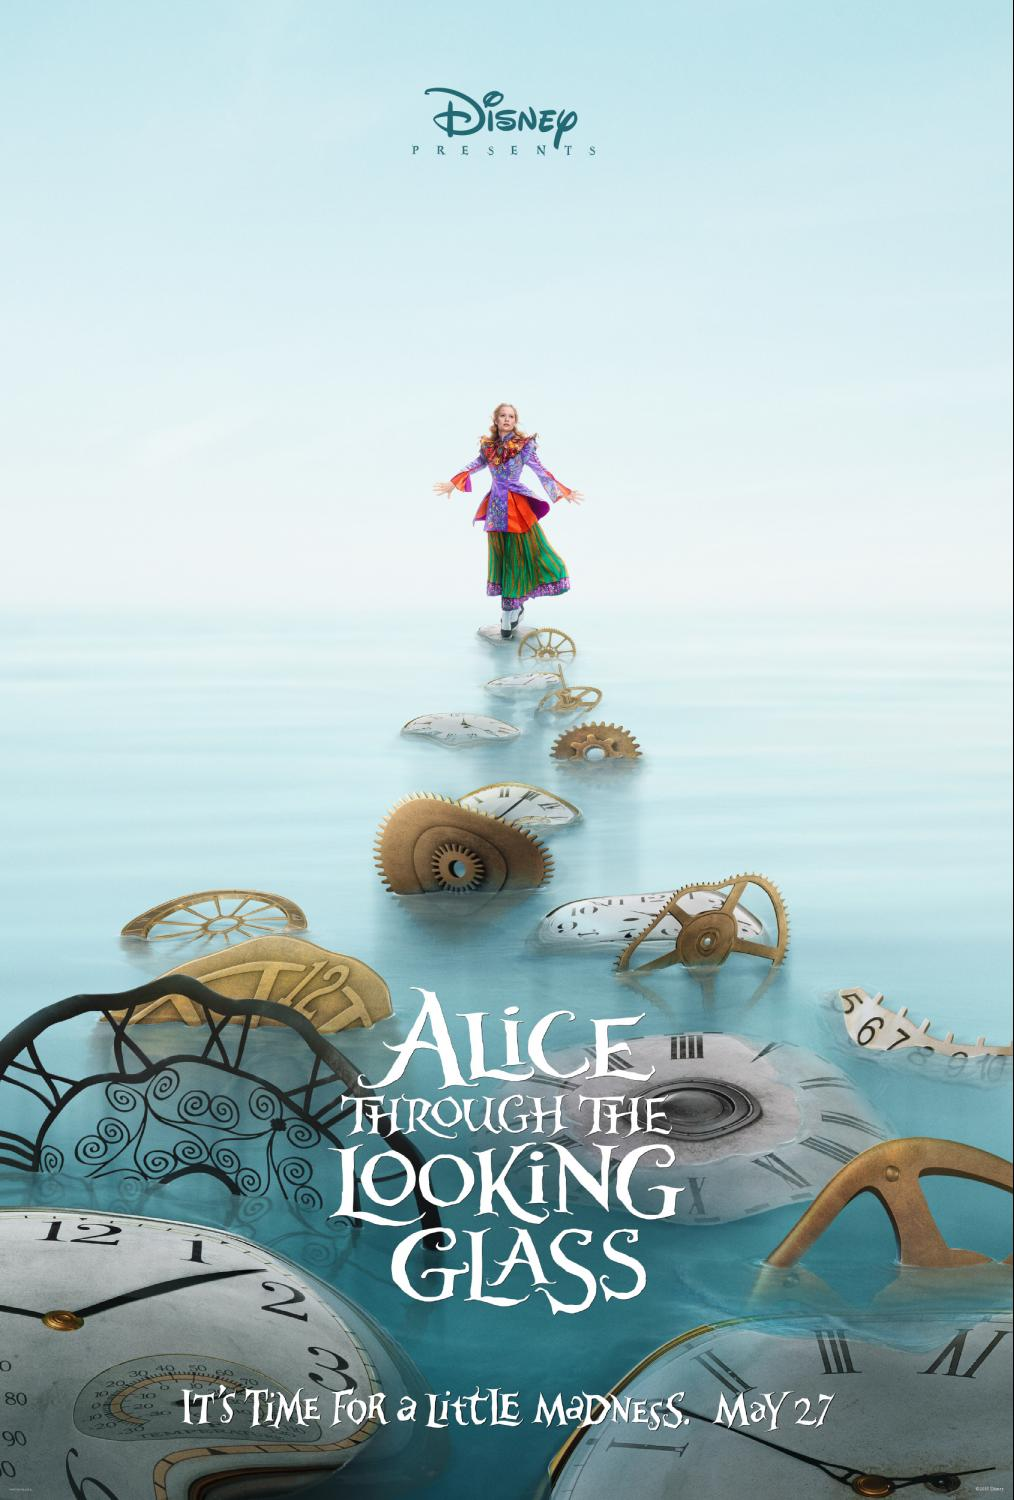 Disney Teases Alice Through the Looking Glass